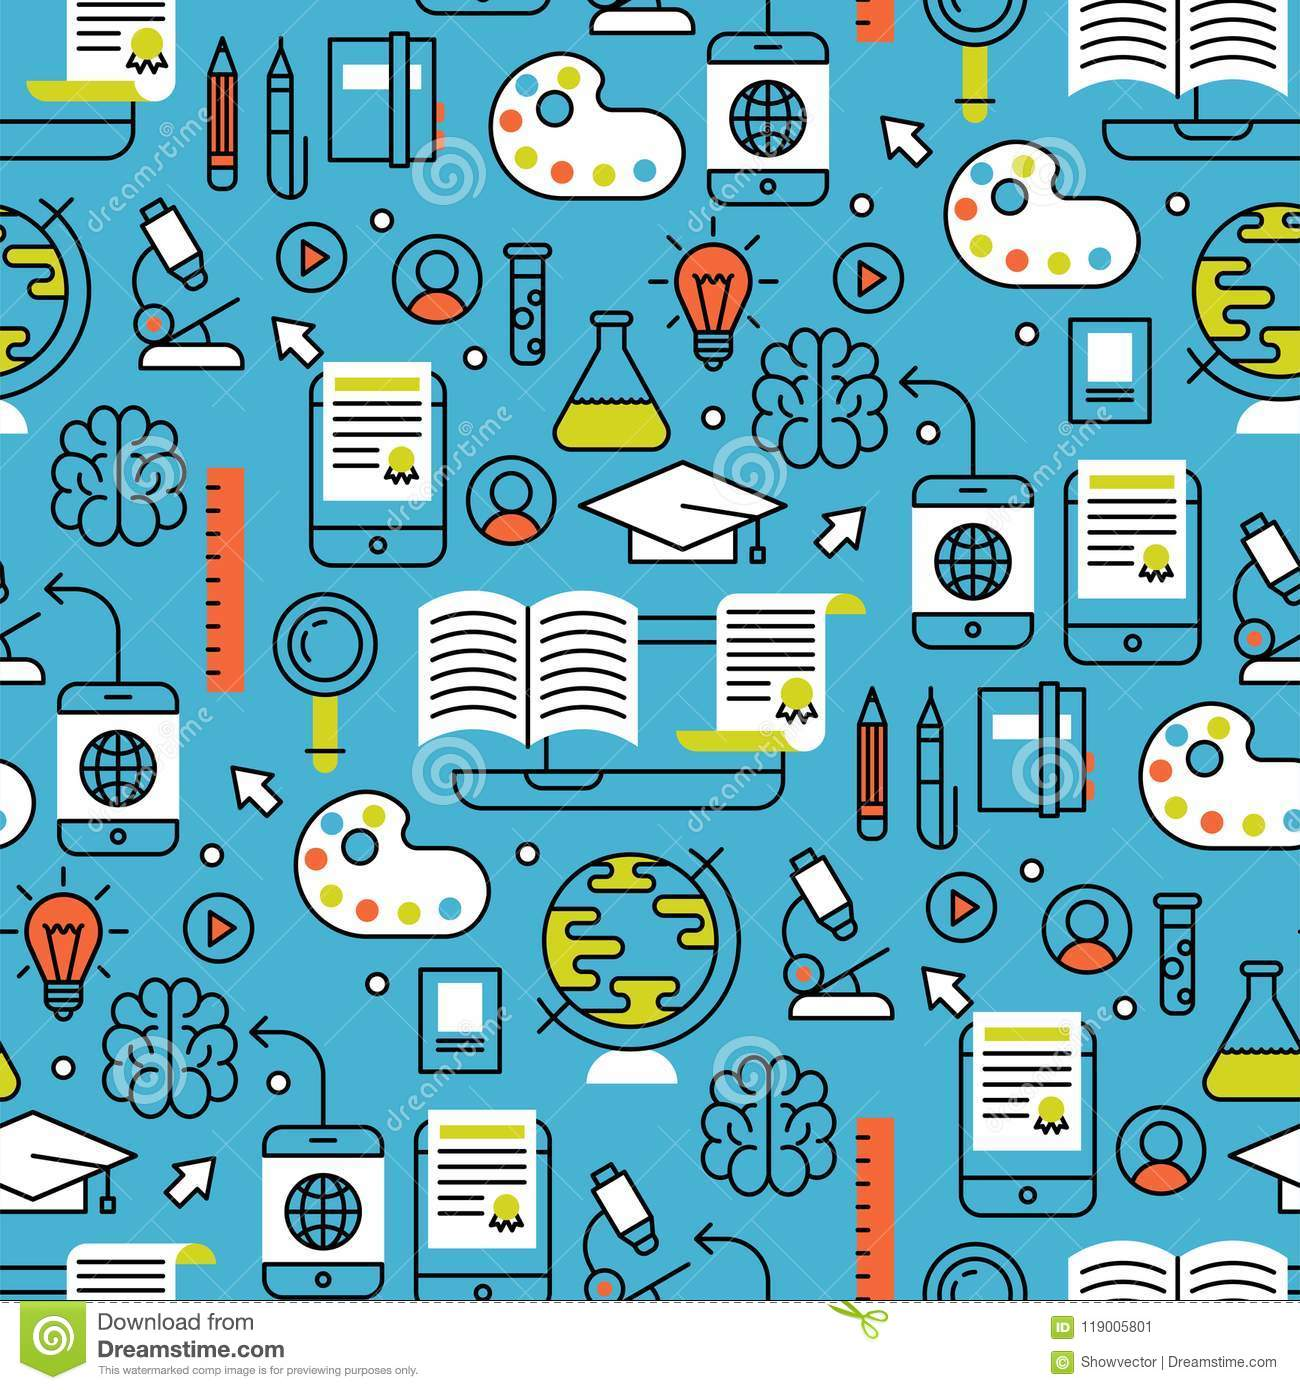 Online Learning Flat Design Distant Education Seamless